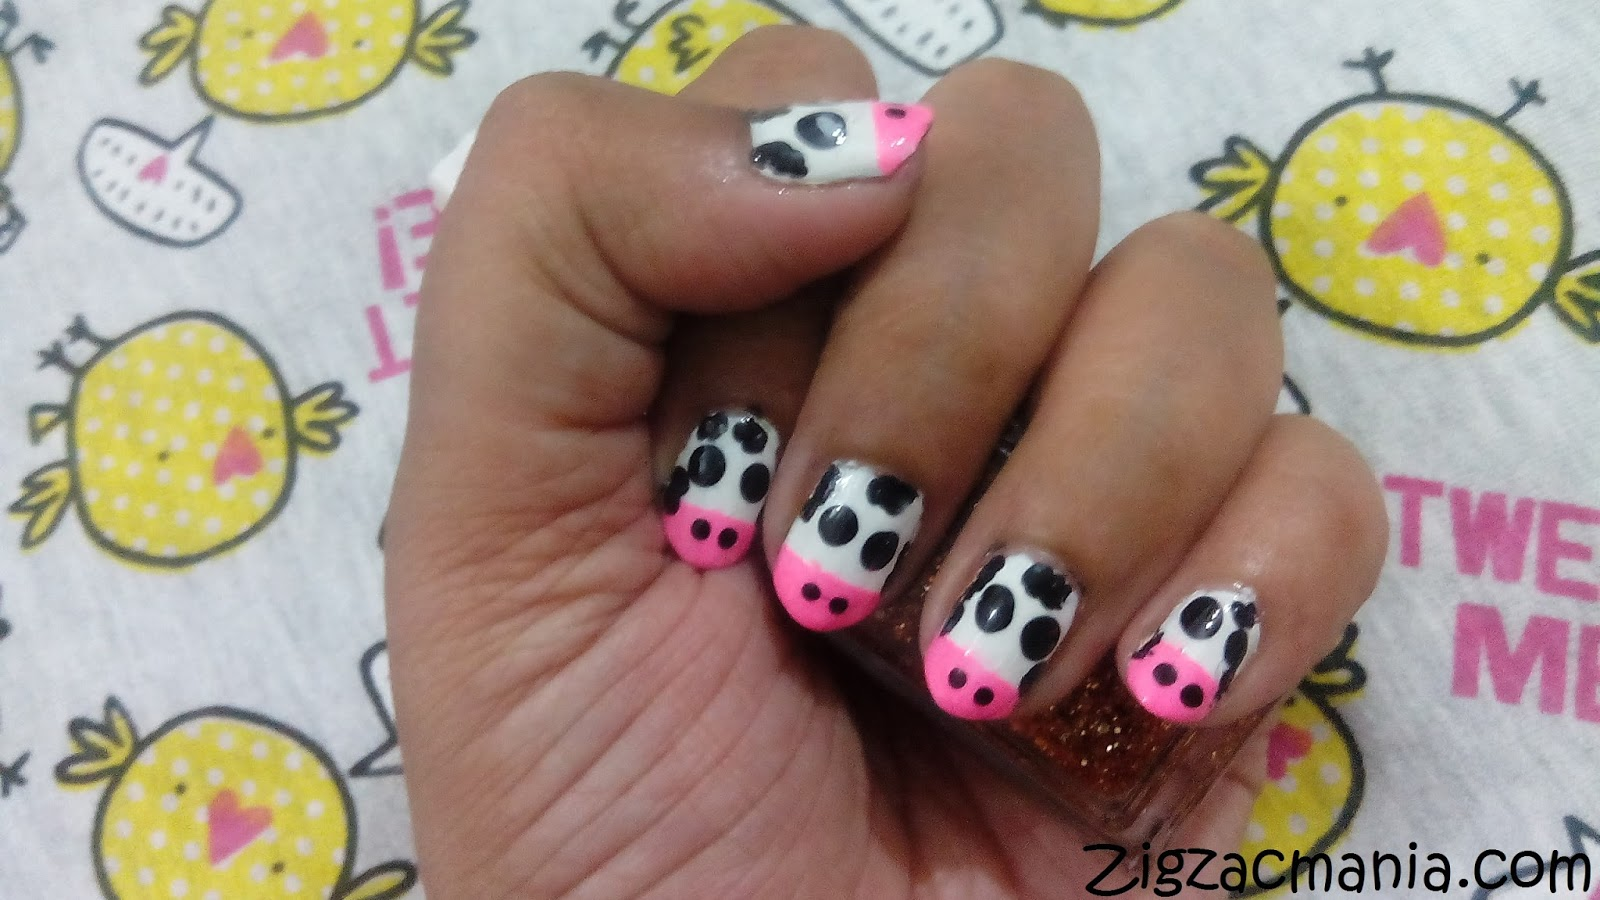 Tools And Materials Used In Nail Art   Splendid Wedding Company